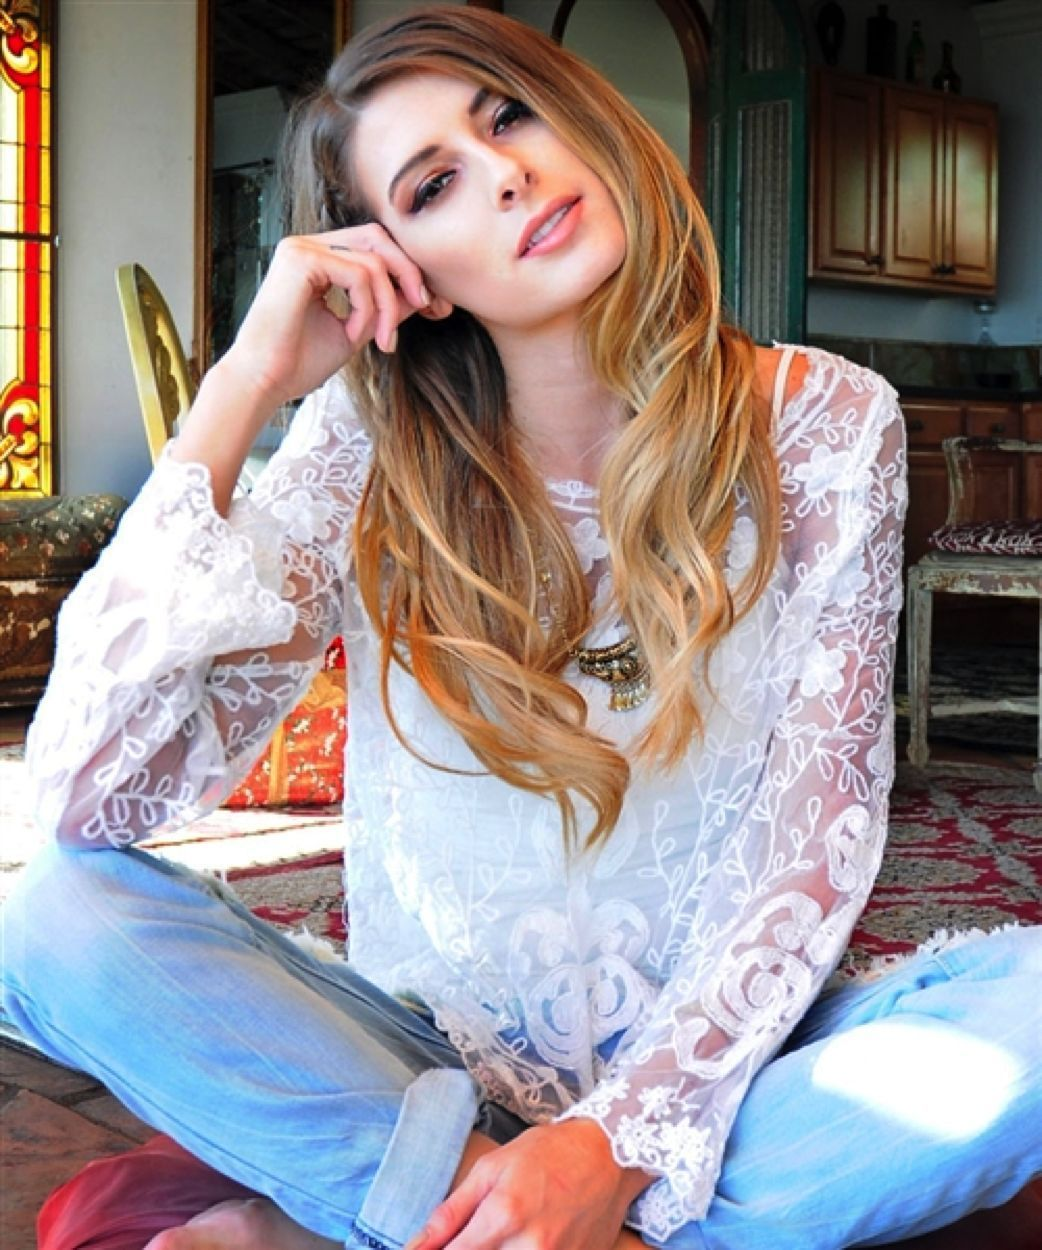 Image 3 of Romantic Sexy Boho Lace Jrs Tunic in White or Black, Party or Casual Dress-up -